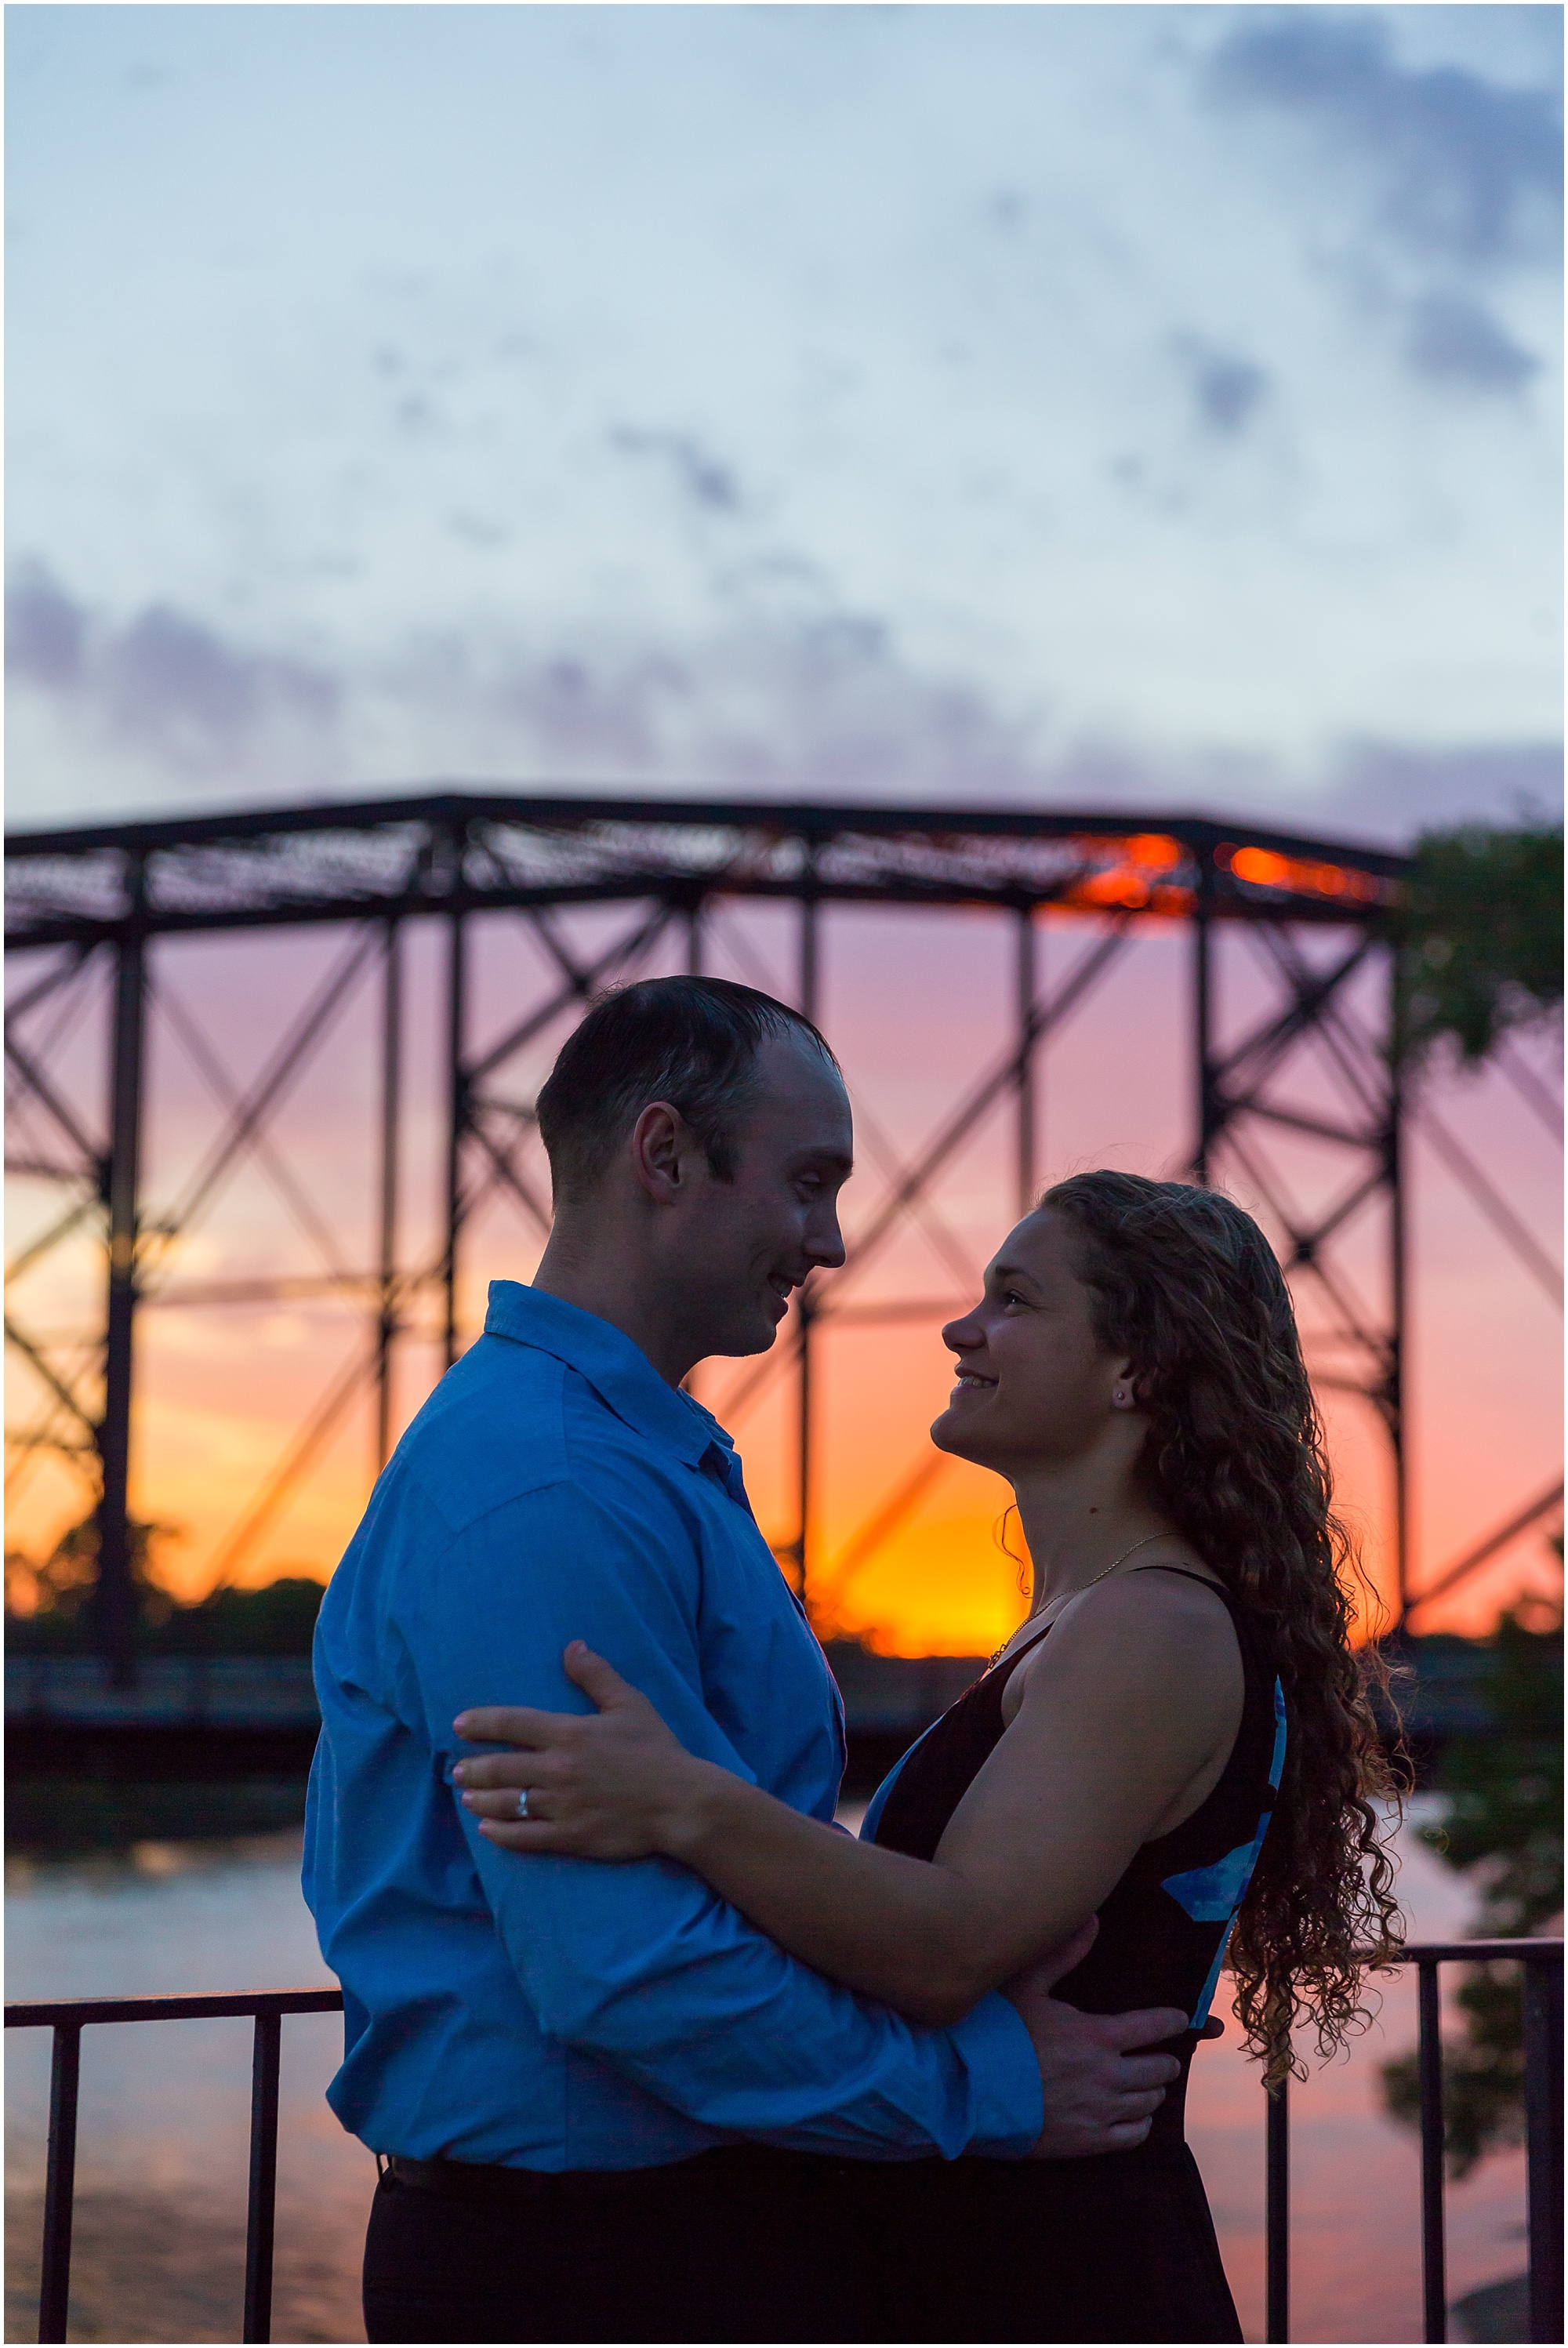 A couple stands on the MLK memorial platform by the Brazos River, looking into one another's eyes, while the sun sets behind them - Waco, Texas - Jason & Melaina Photography - www.jasonandmelaina.com